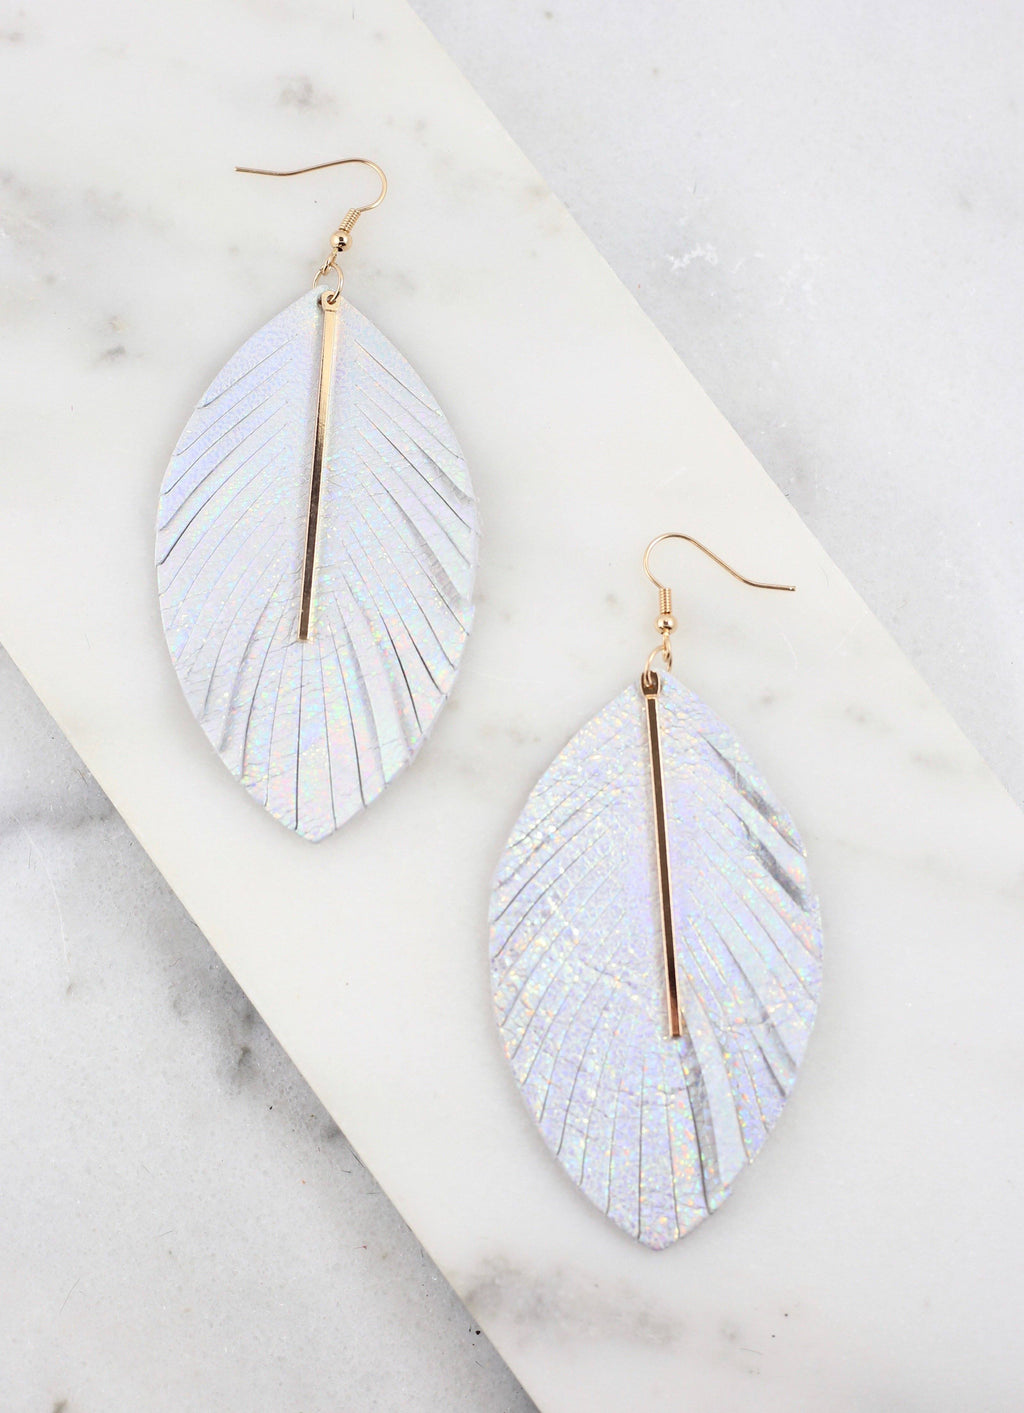 Frida Hologram Feather Earring With Accent Bar - Caroline Hill